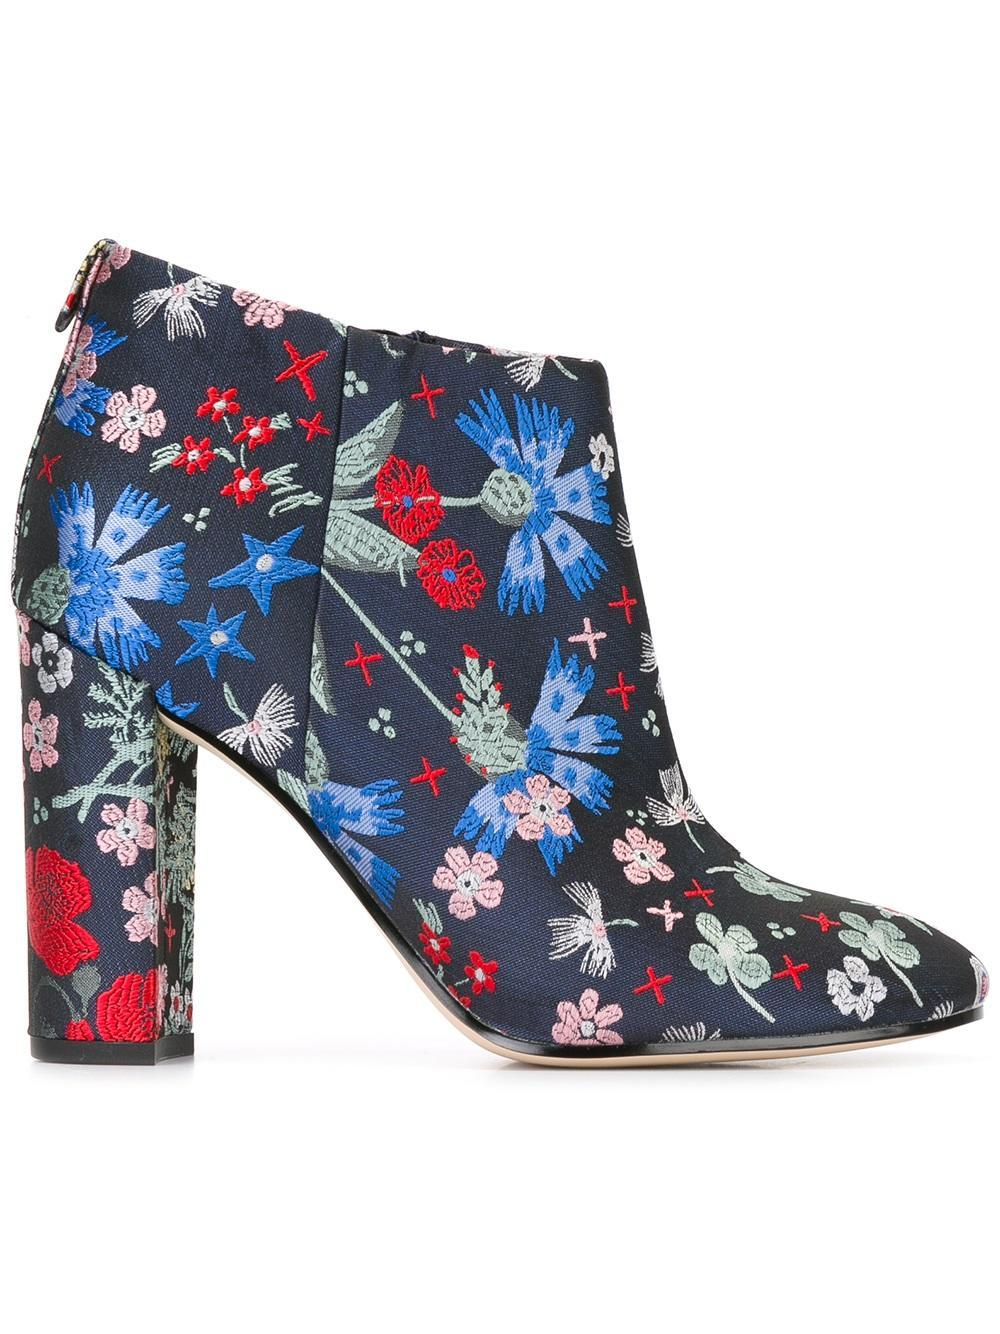 637eb88166dab4 Lyst - Sam Edelman Cambell Embroidered Booties in Blue